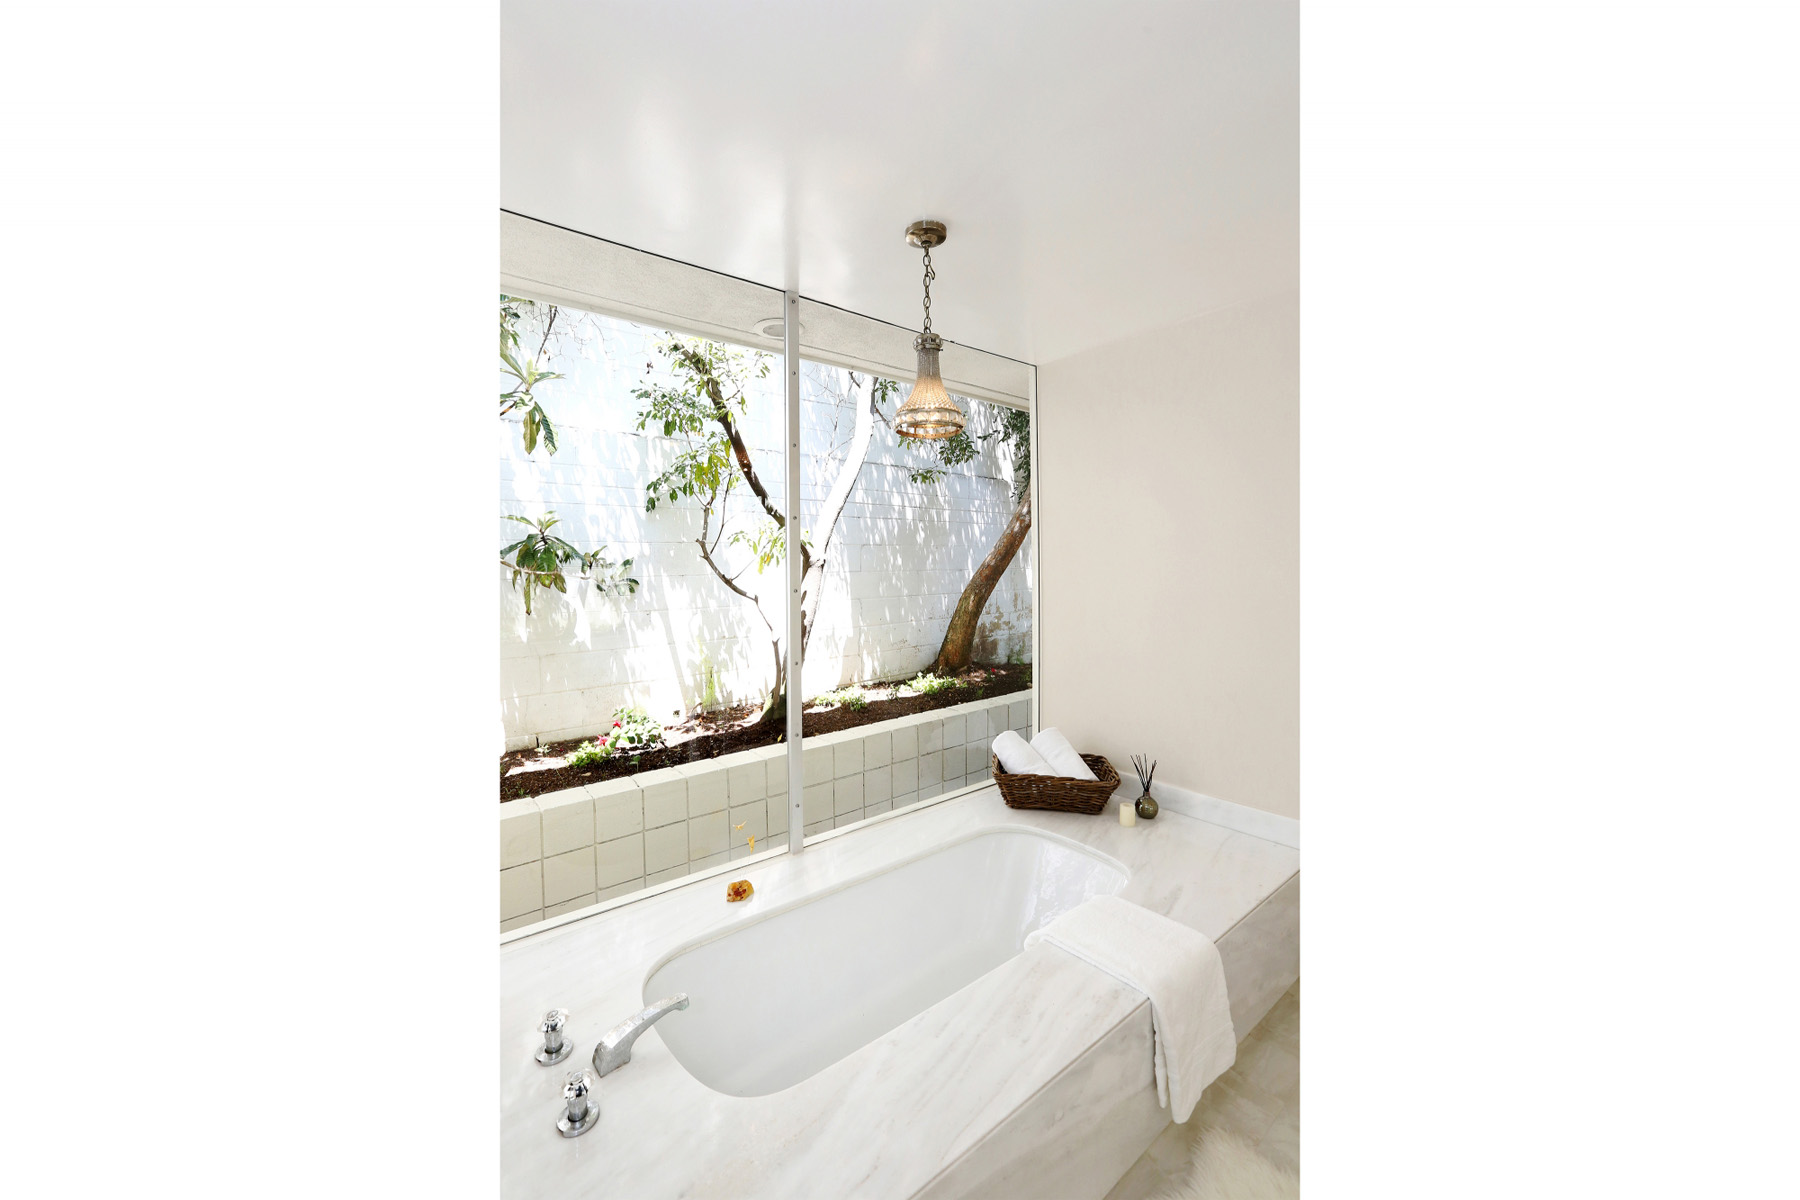 The tub, which appears small thanks to the massive marble box that surrounds it, is actually quite long. With a giant picture window beside it and a mini-chandelier overhead, this is clearly intended for prolonged luxuriating. The room also features a separate shower and private toilet stall.